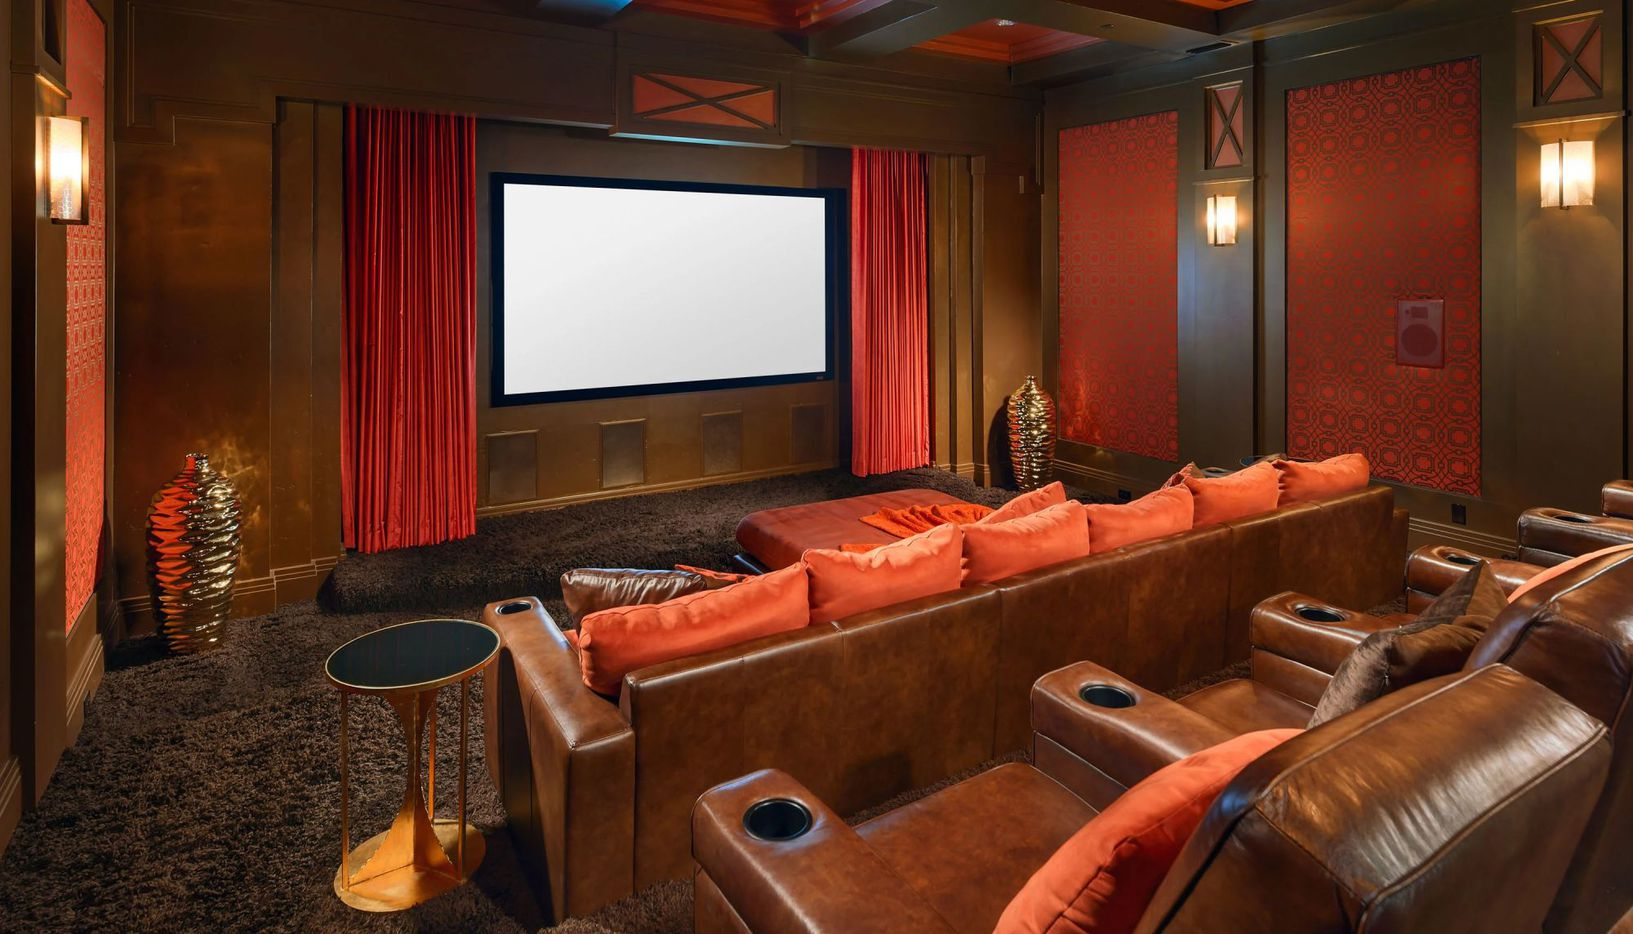 The house has its own movie theater.